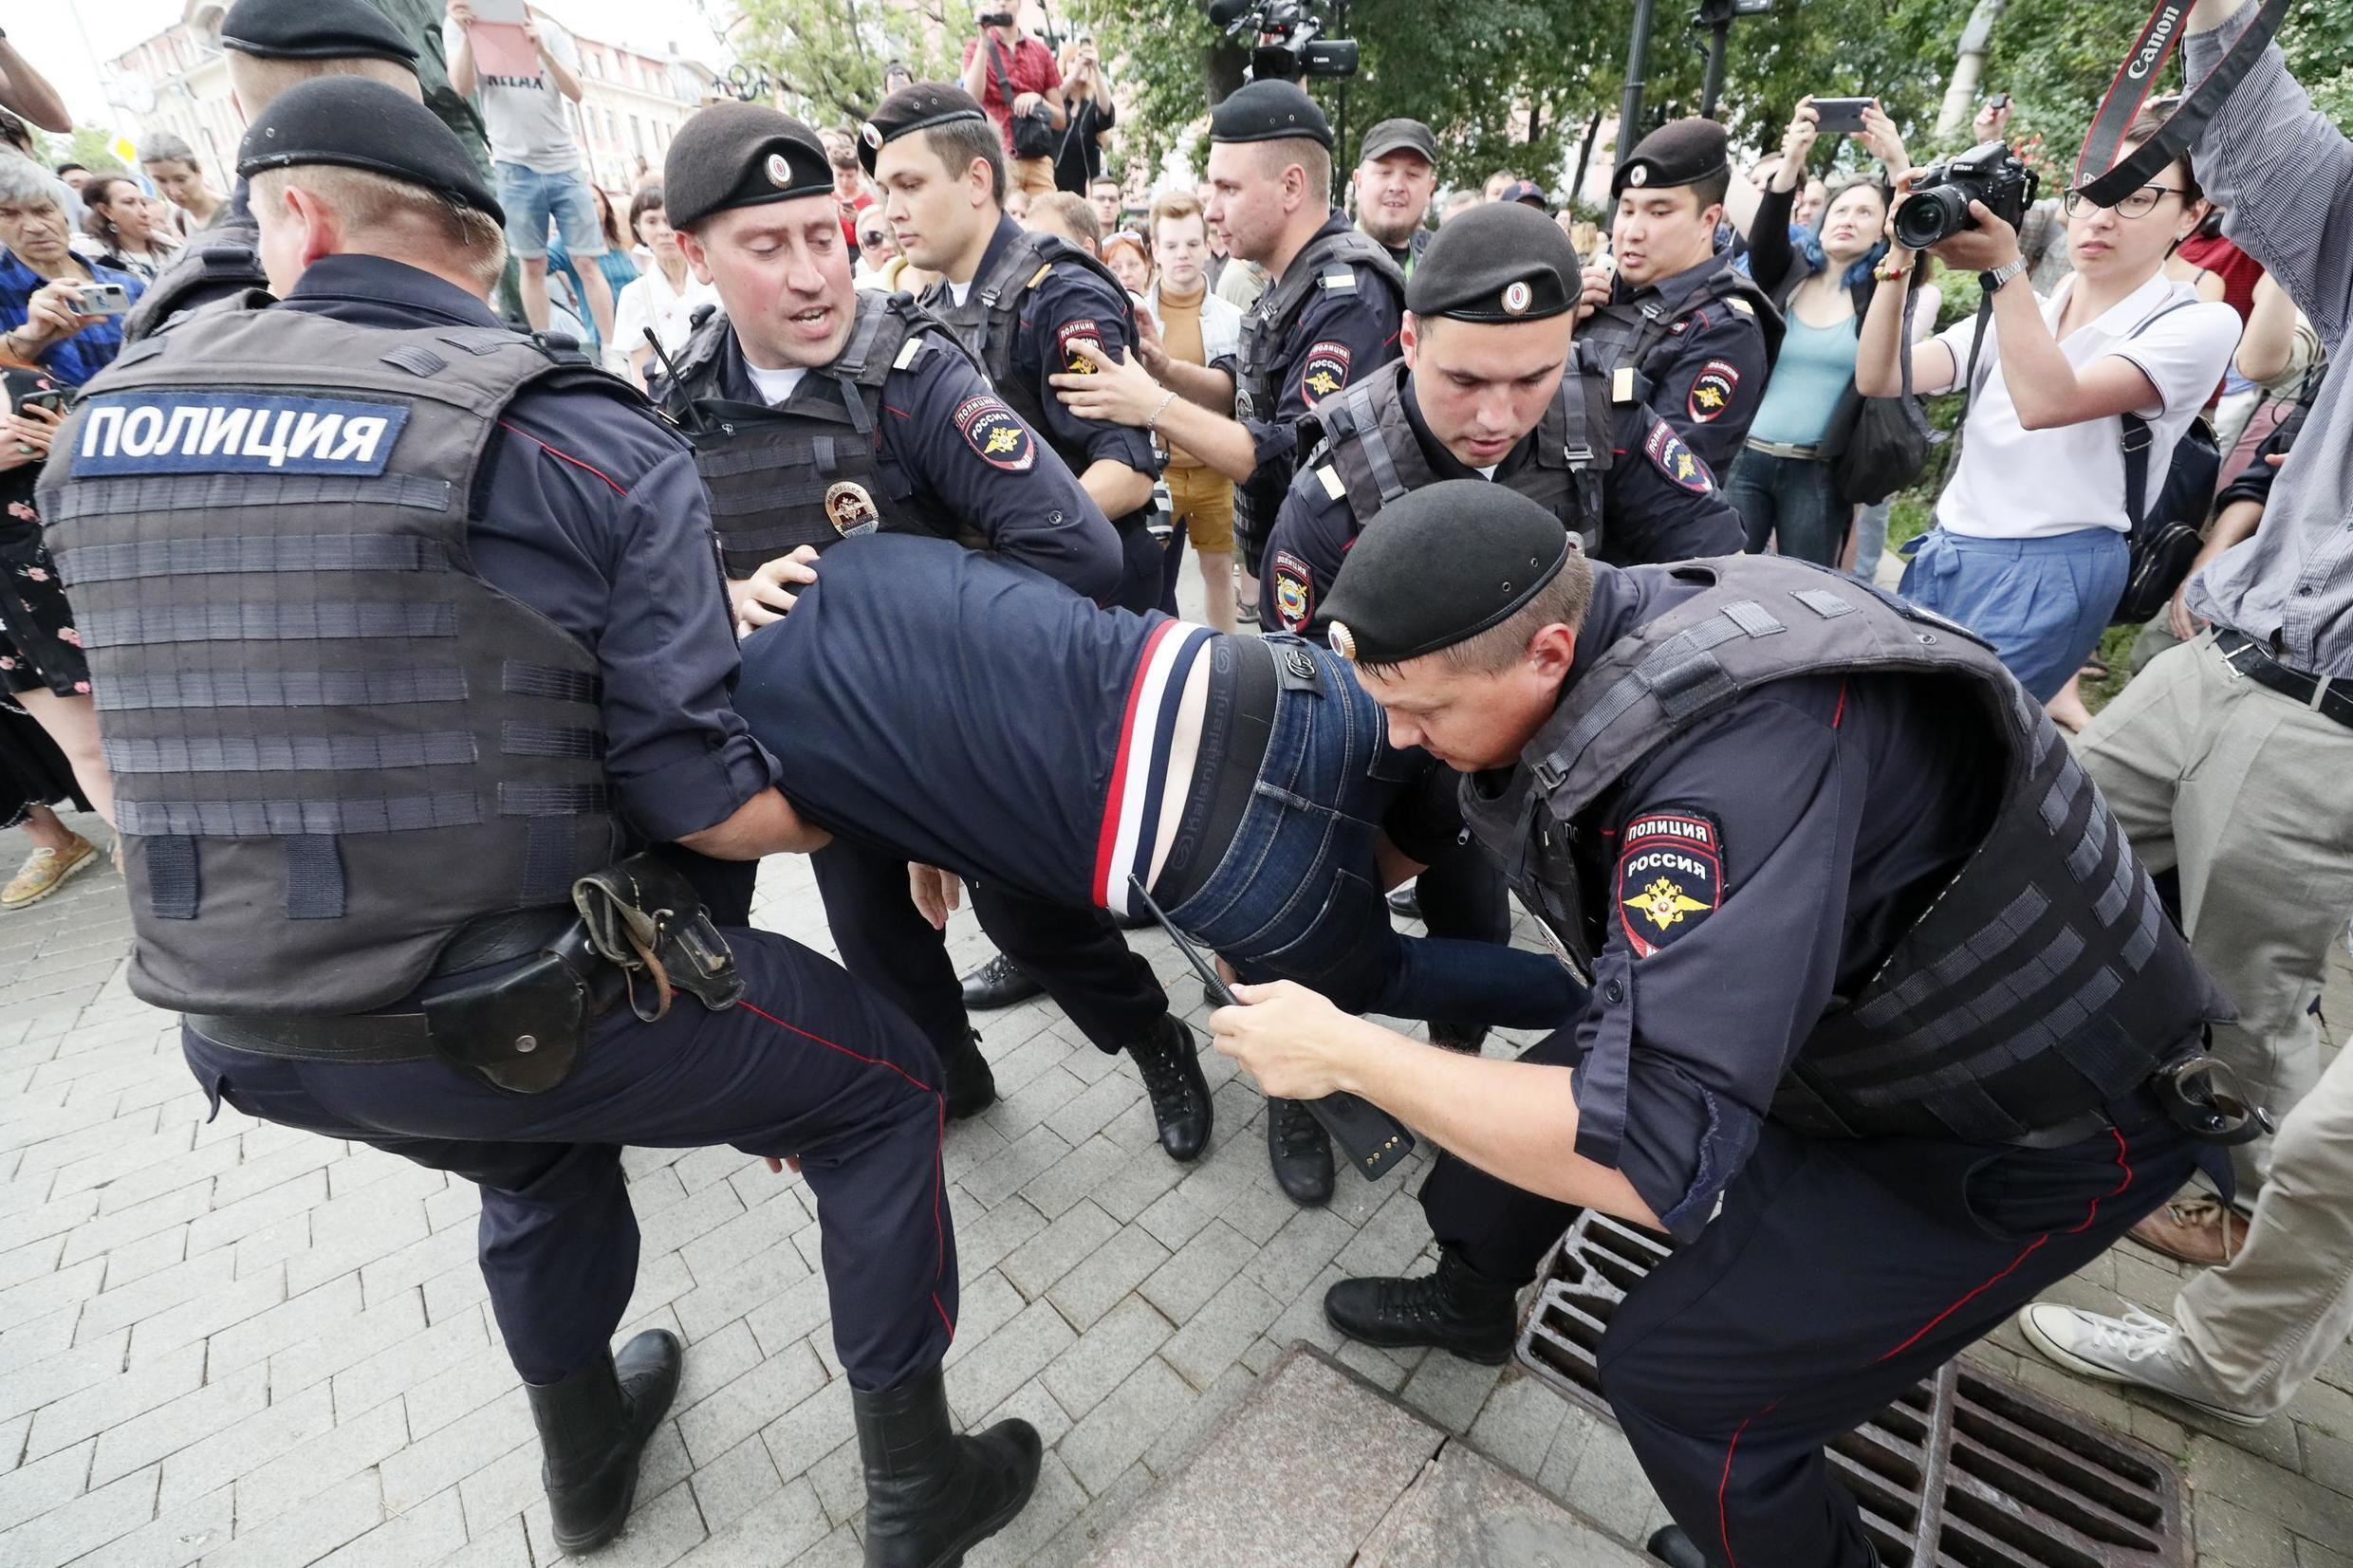 Law enforcement officers detain a participant of a rally in support of Russian investigative journalist Ivan Golunov, who was detained by police, accused of drug offences and later freed from house arrest, in Moscow, Russia June 12, 2019.